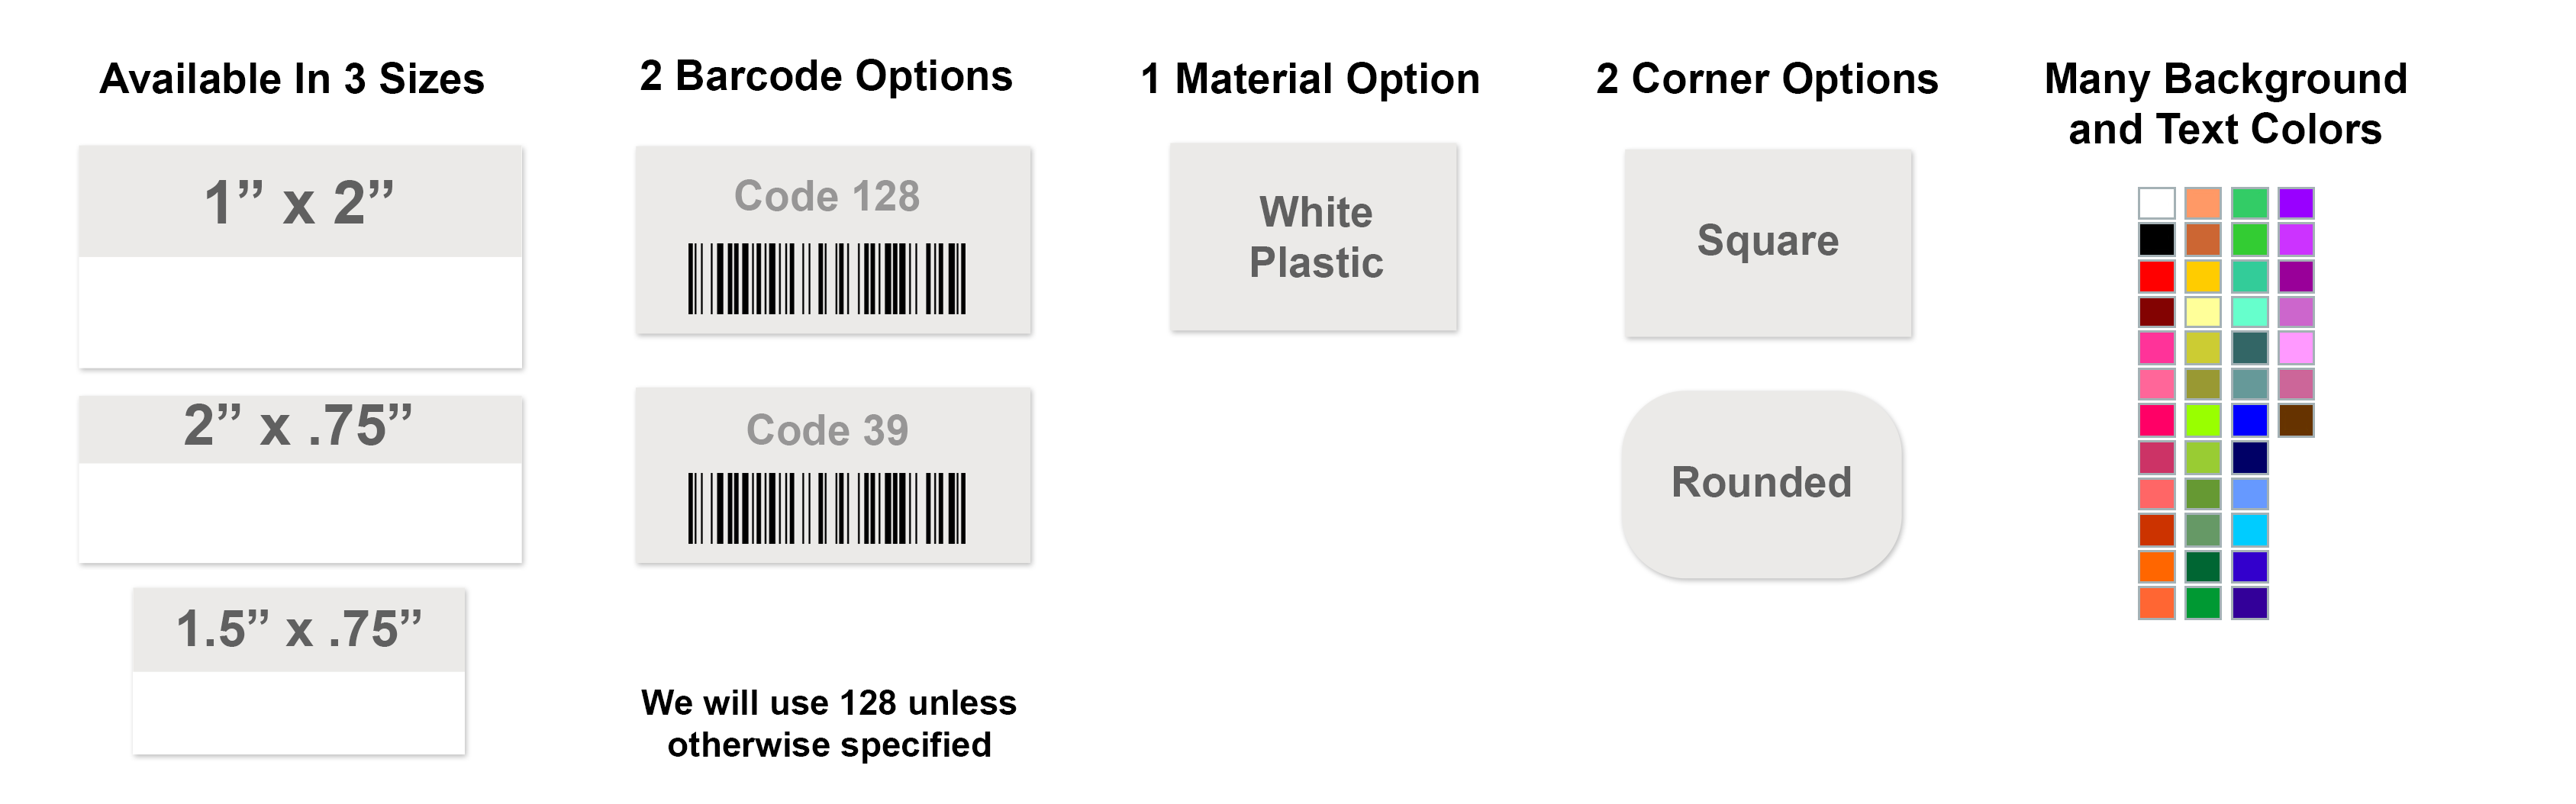 Polyester Asset Tag with Barcode Options